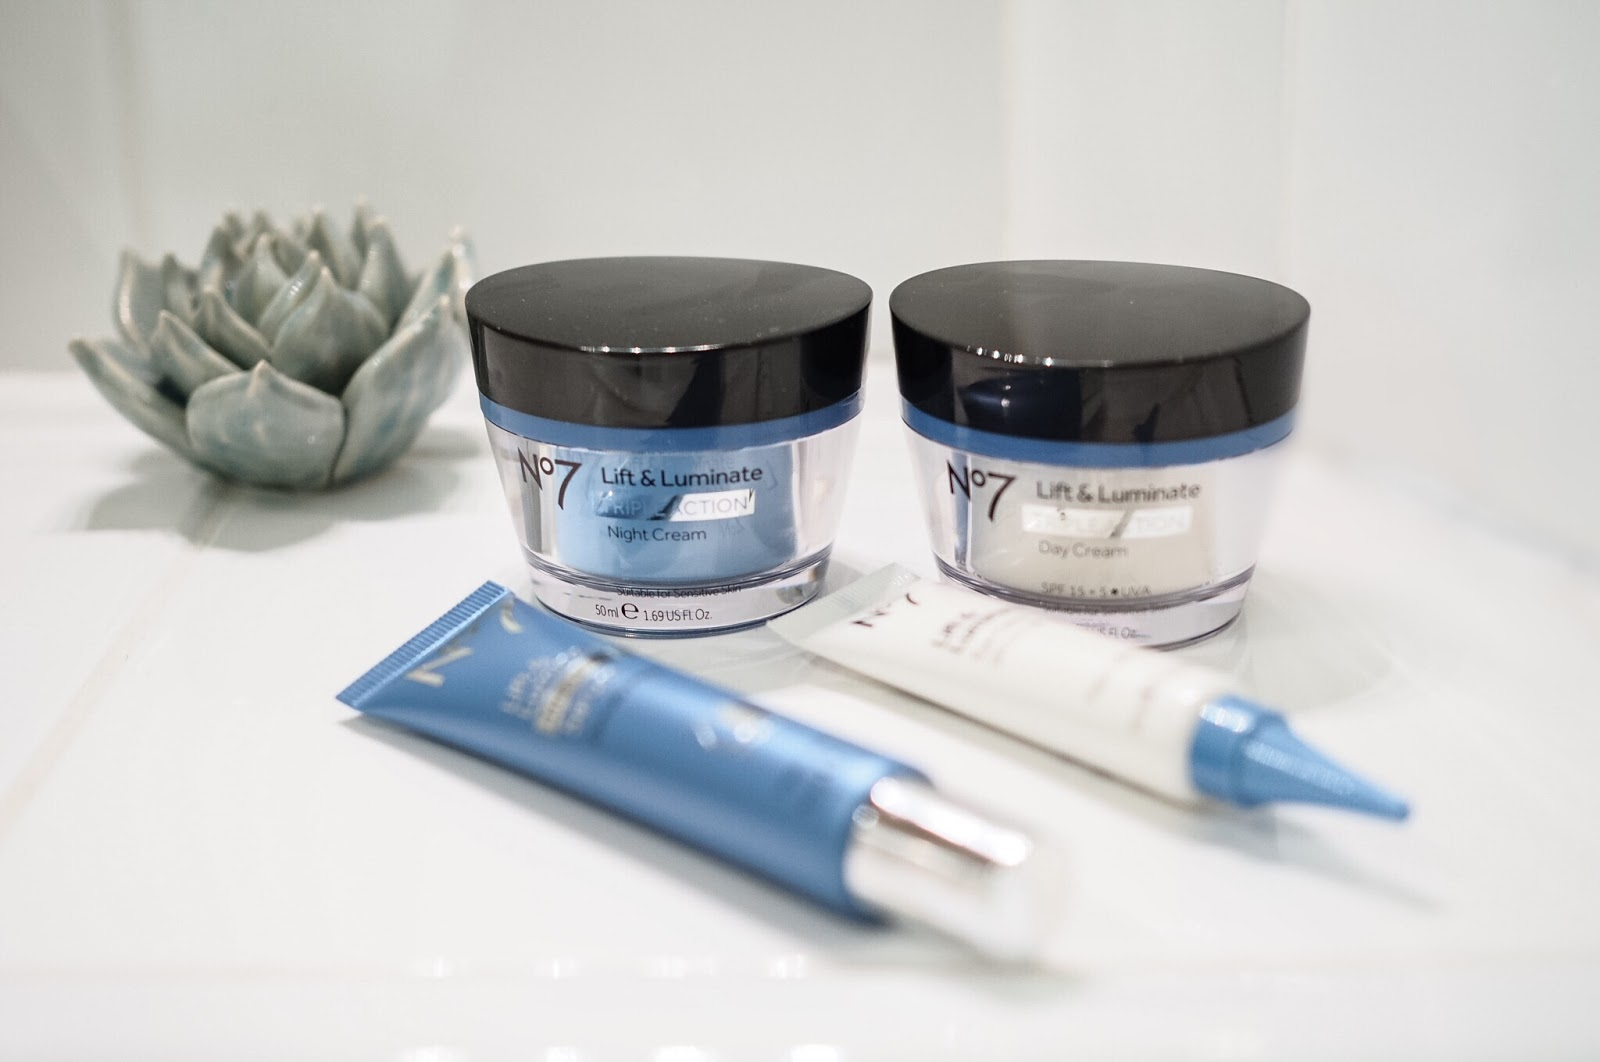 No7 Lift and Luminate #BetterTogether Trial Results and Review - Get